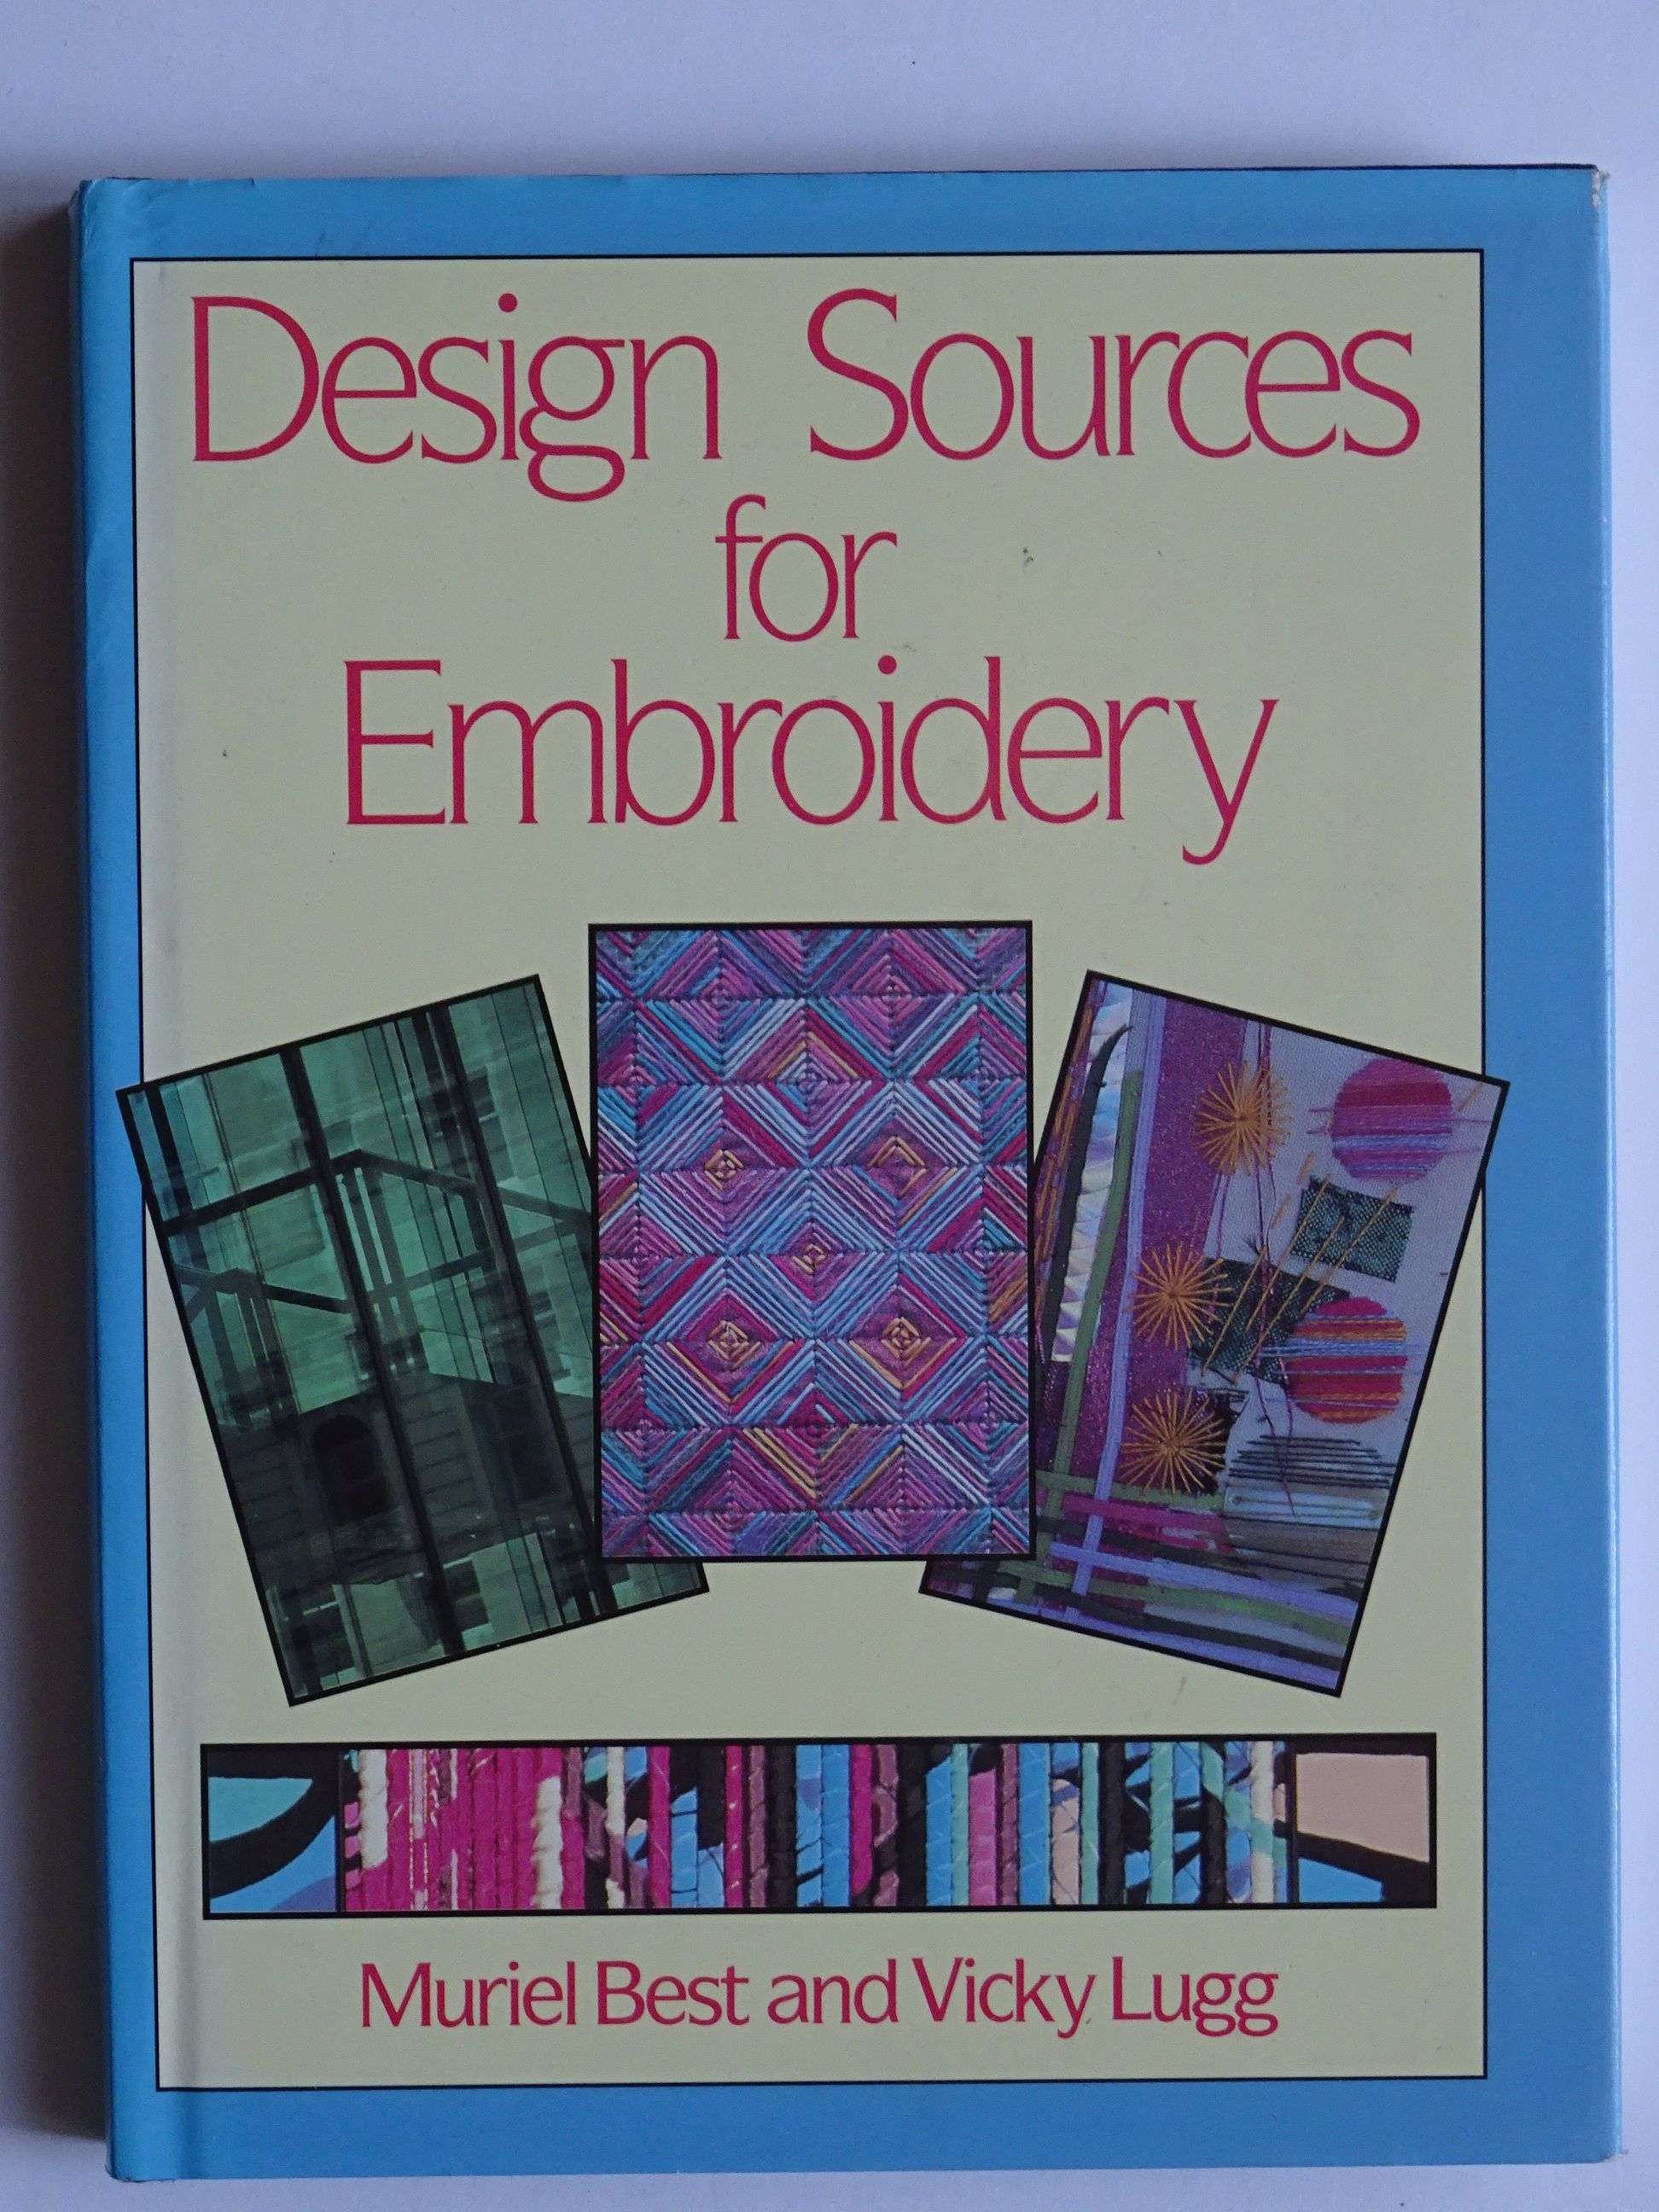 Best, Muriel, & Logg, Vicky - Design Sources for Embroidery